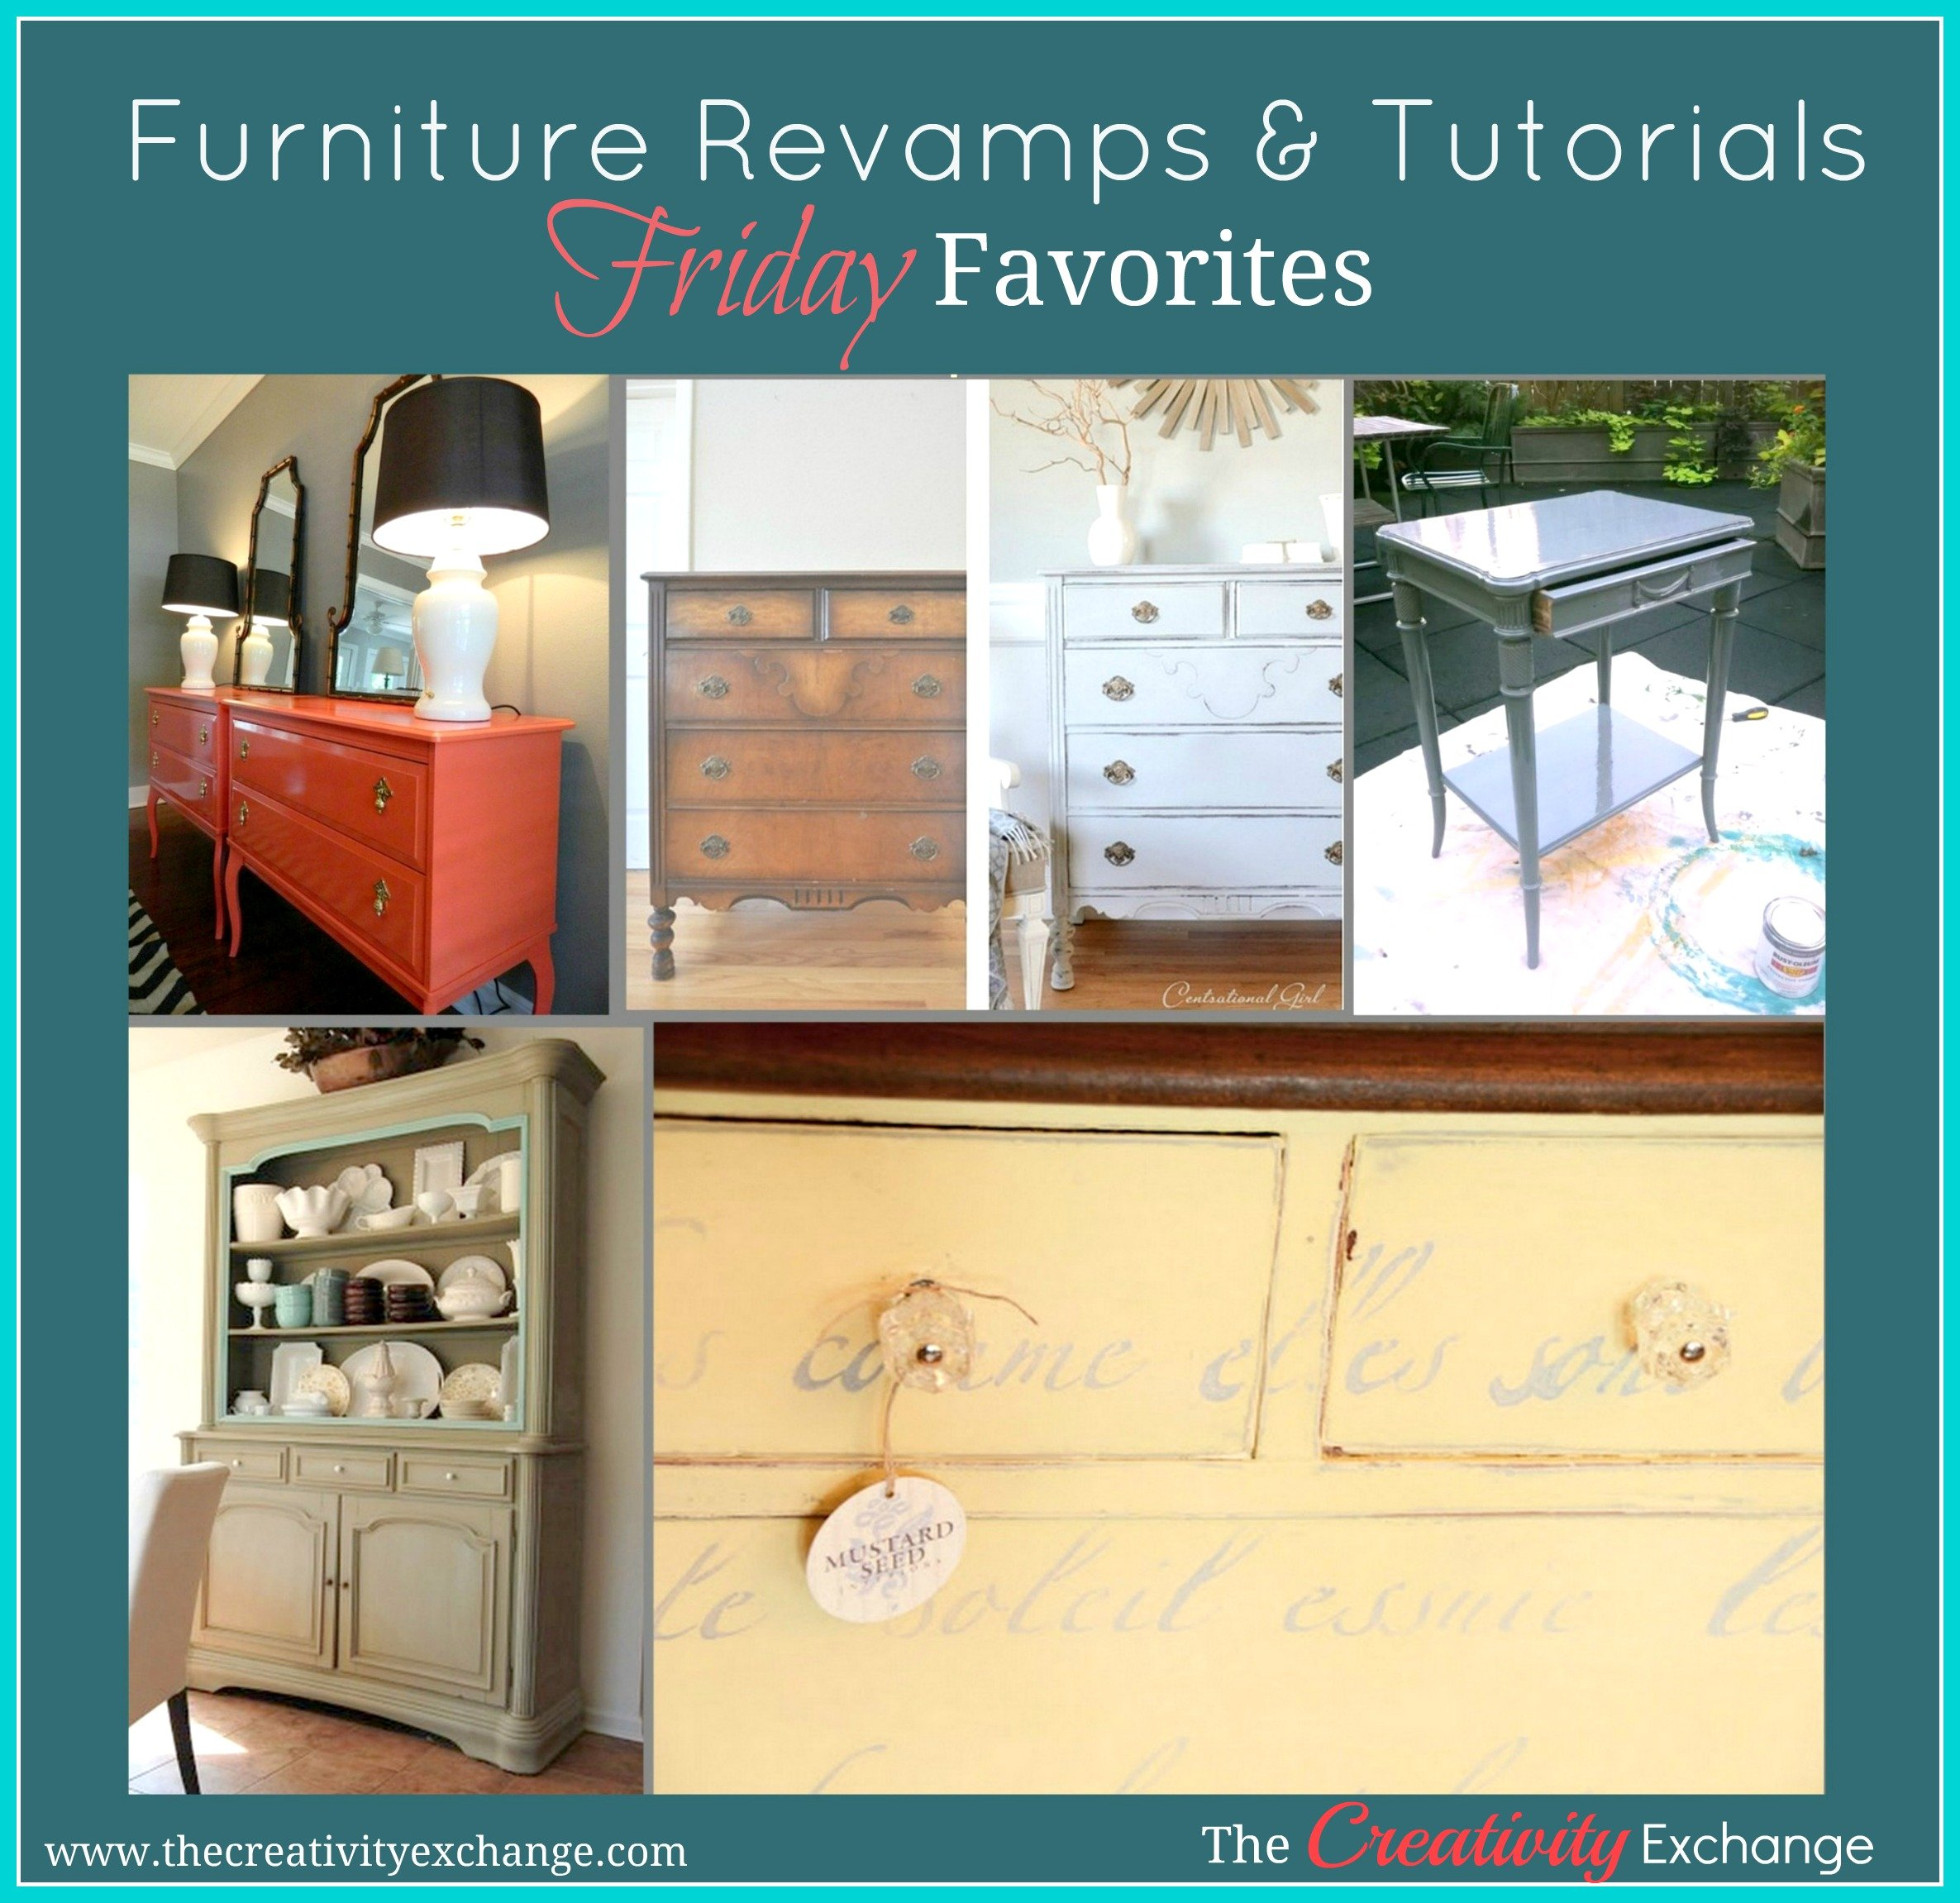 Friday favorites furniture treatments revamps for Furniture exchange